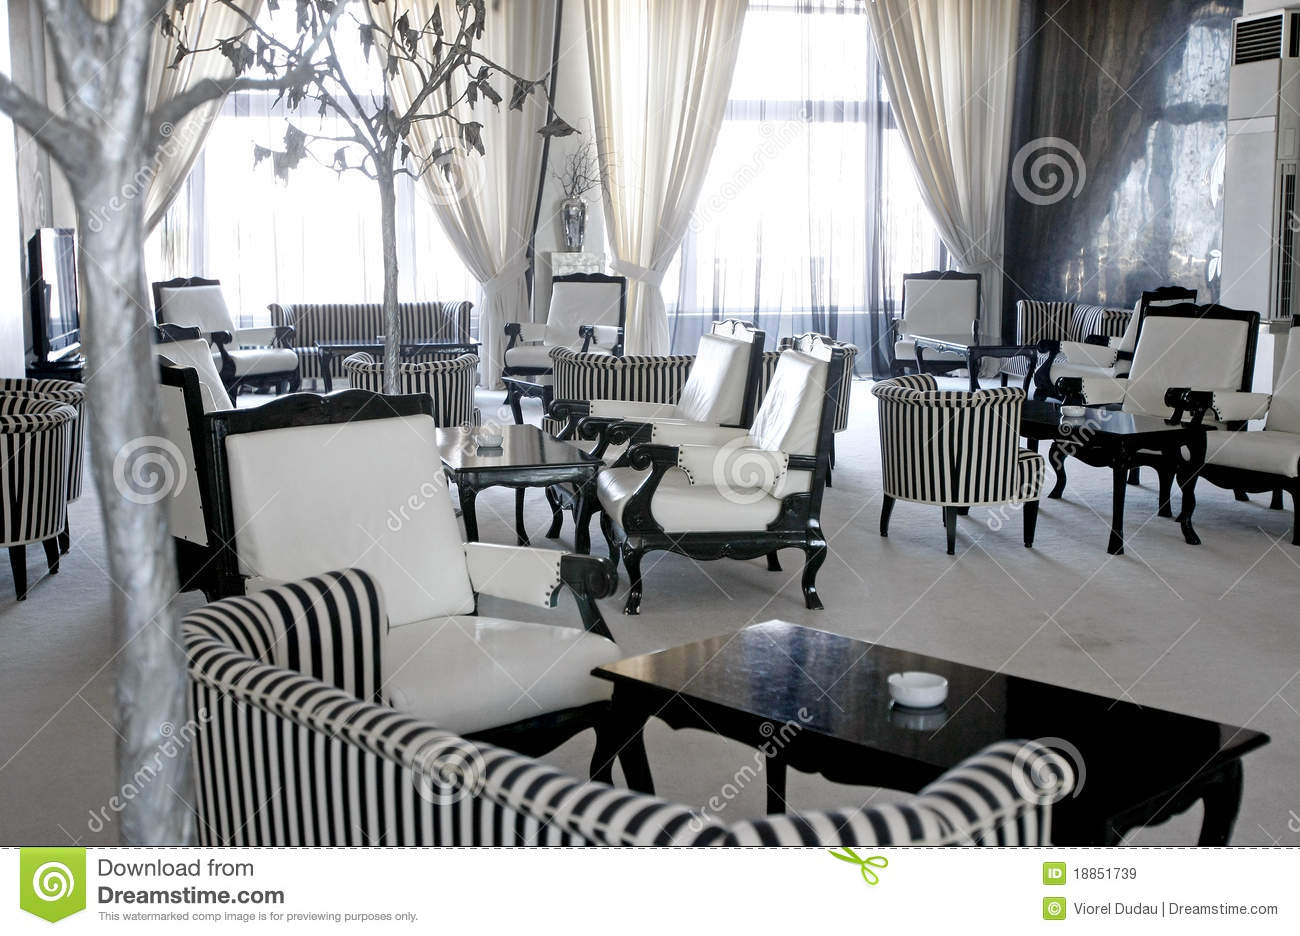 restaurant chairs for less buy baby high luxury cafe or lounge room stock image. image of empty - 18851739